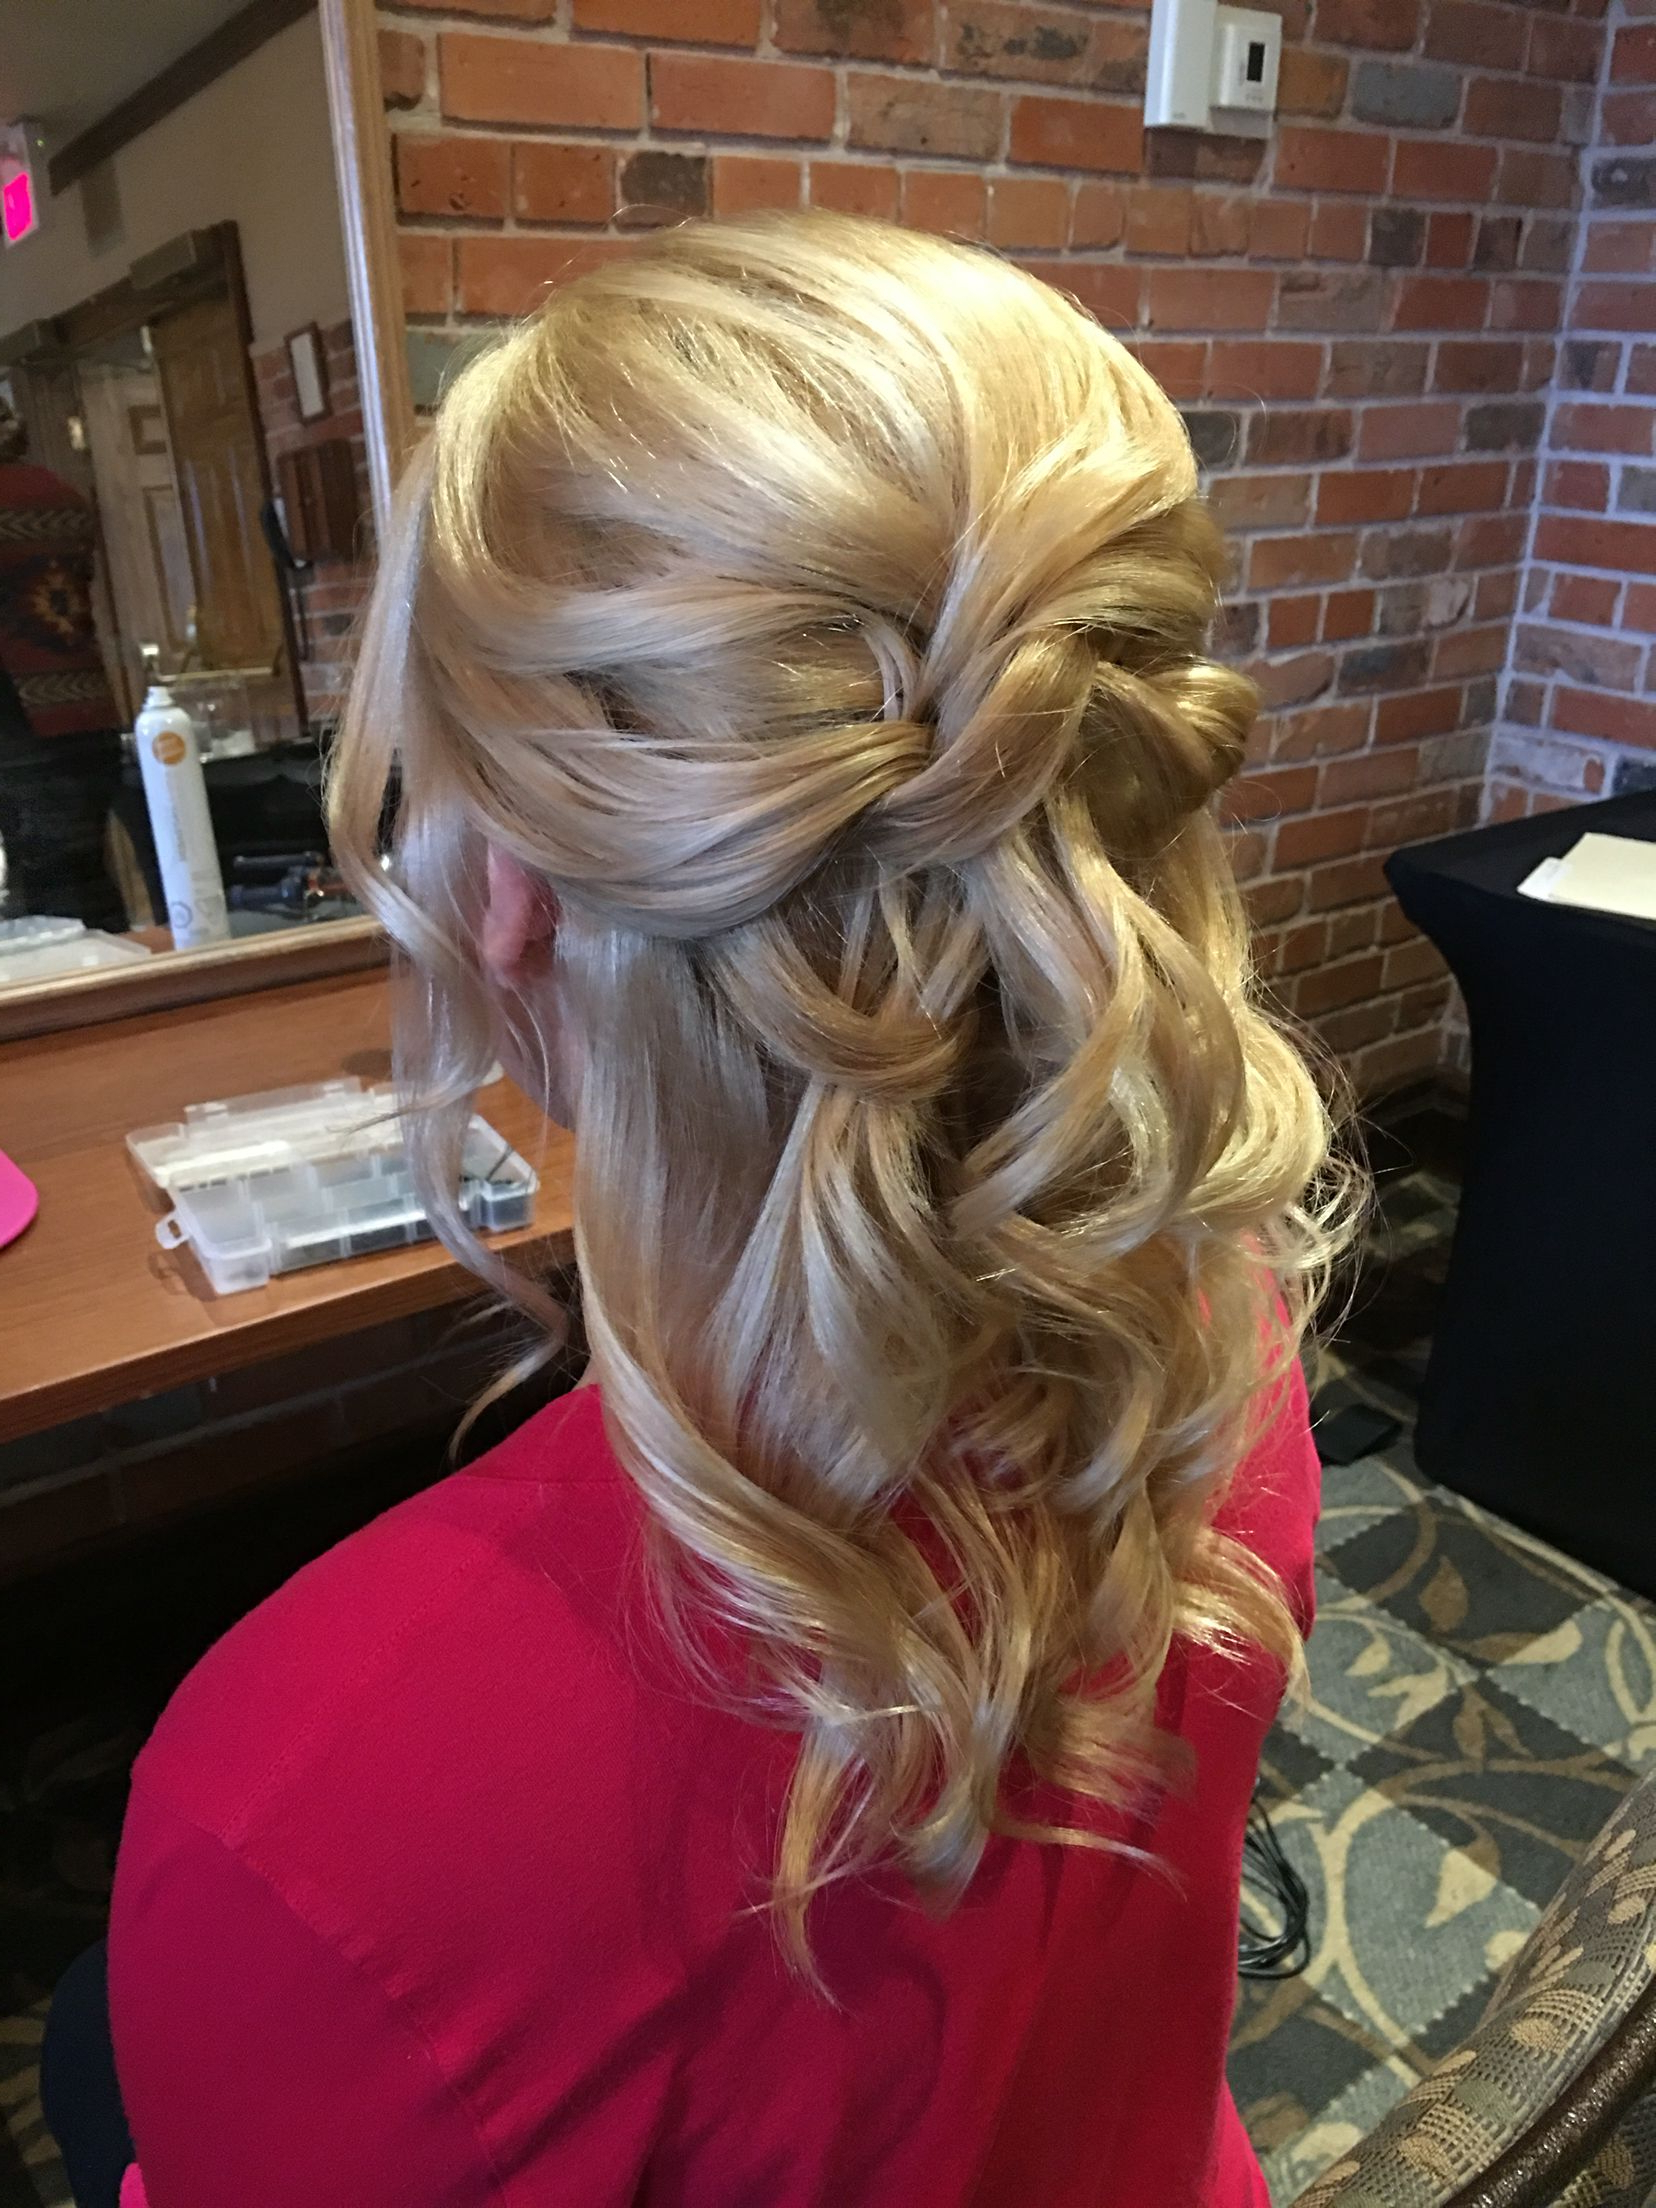 Current Golden Half Up Half Down Curls Bridal Hairstyles Intended For Half Up Half Down Wedding Hair For Bride Or Mother Of The Bride (View 9 of 20)